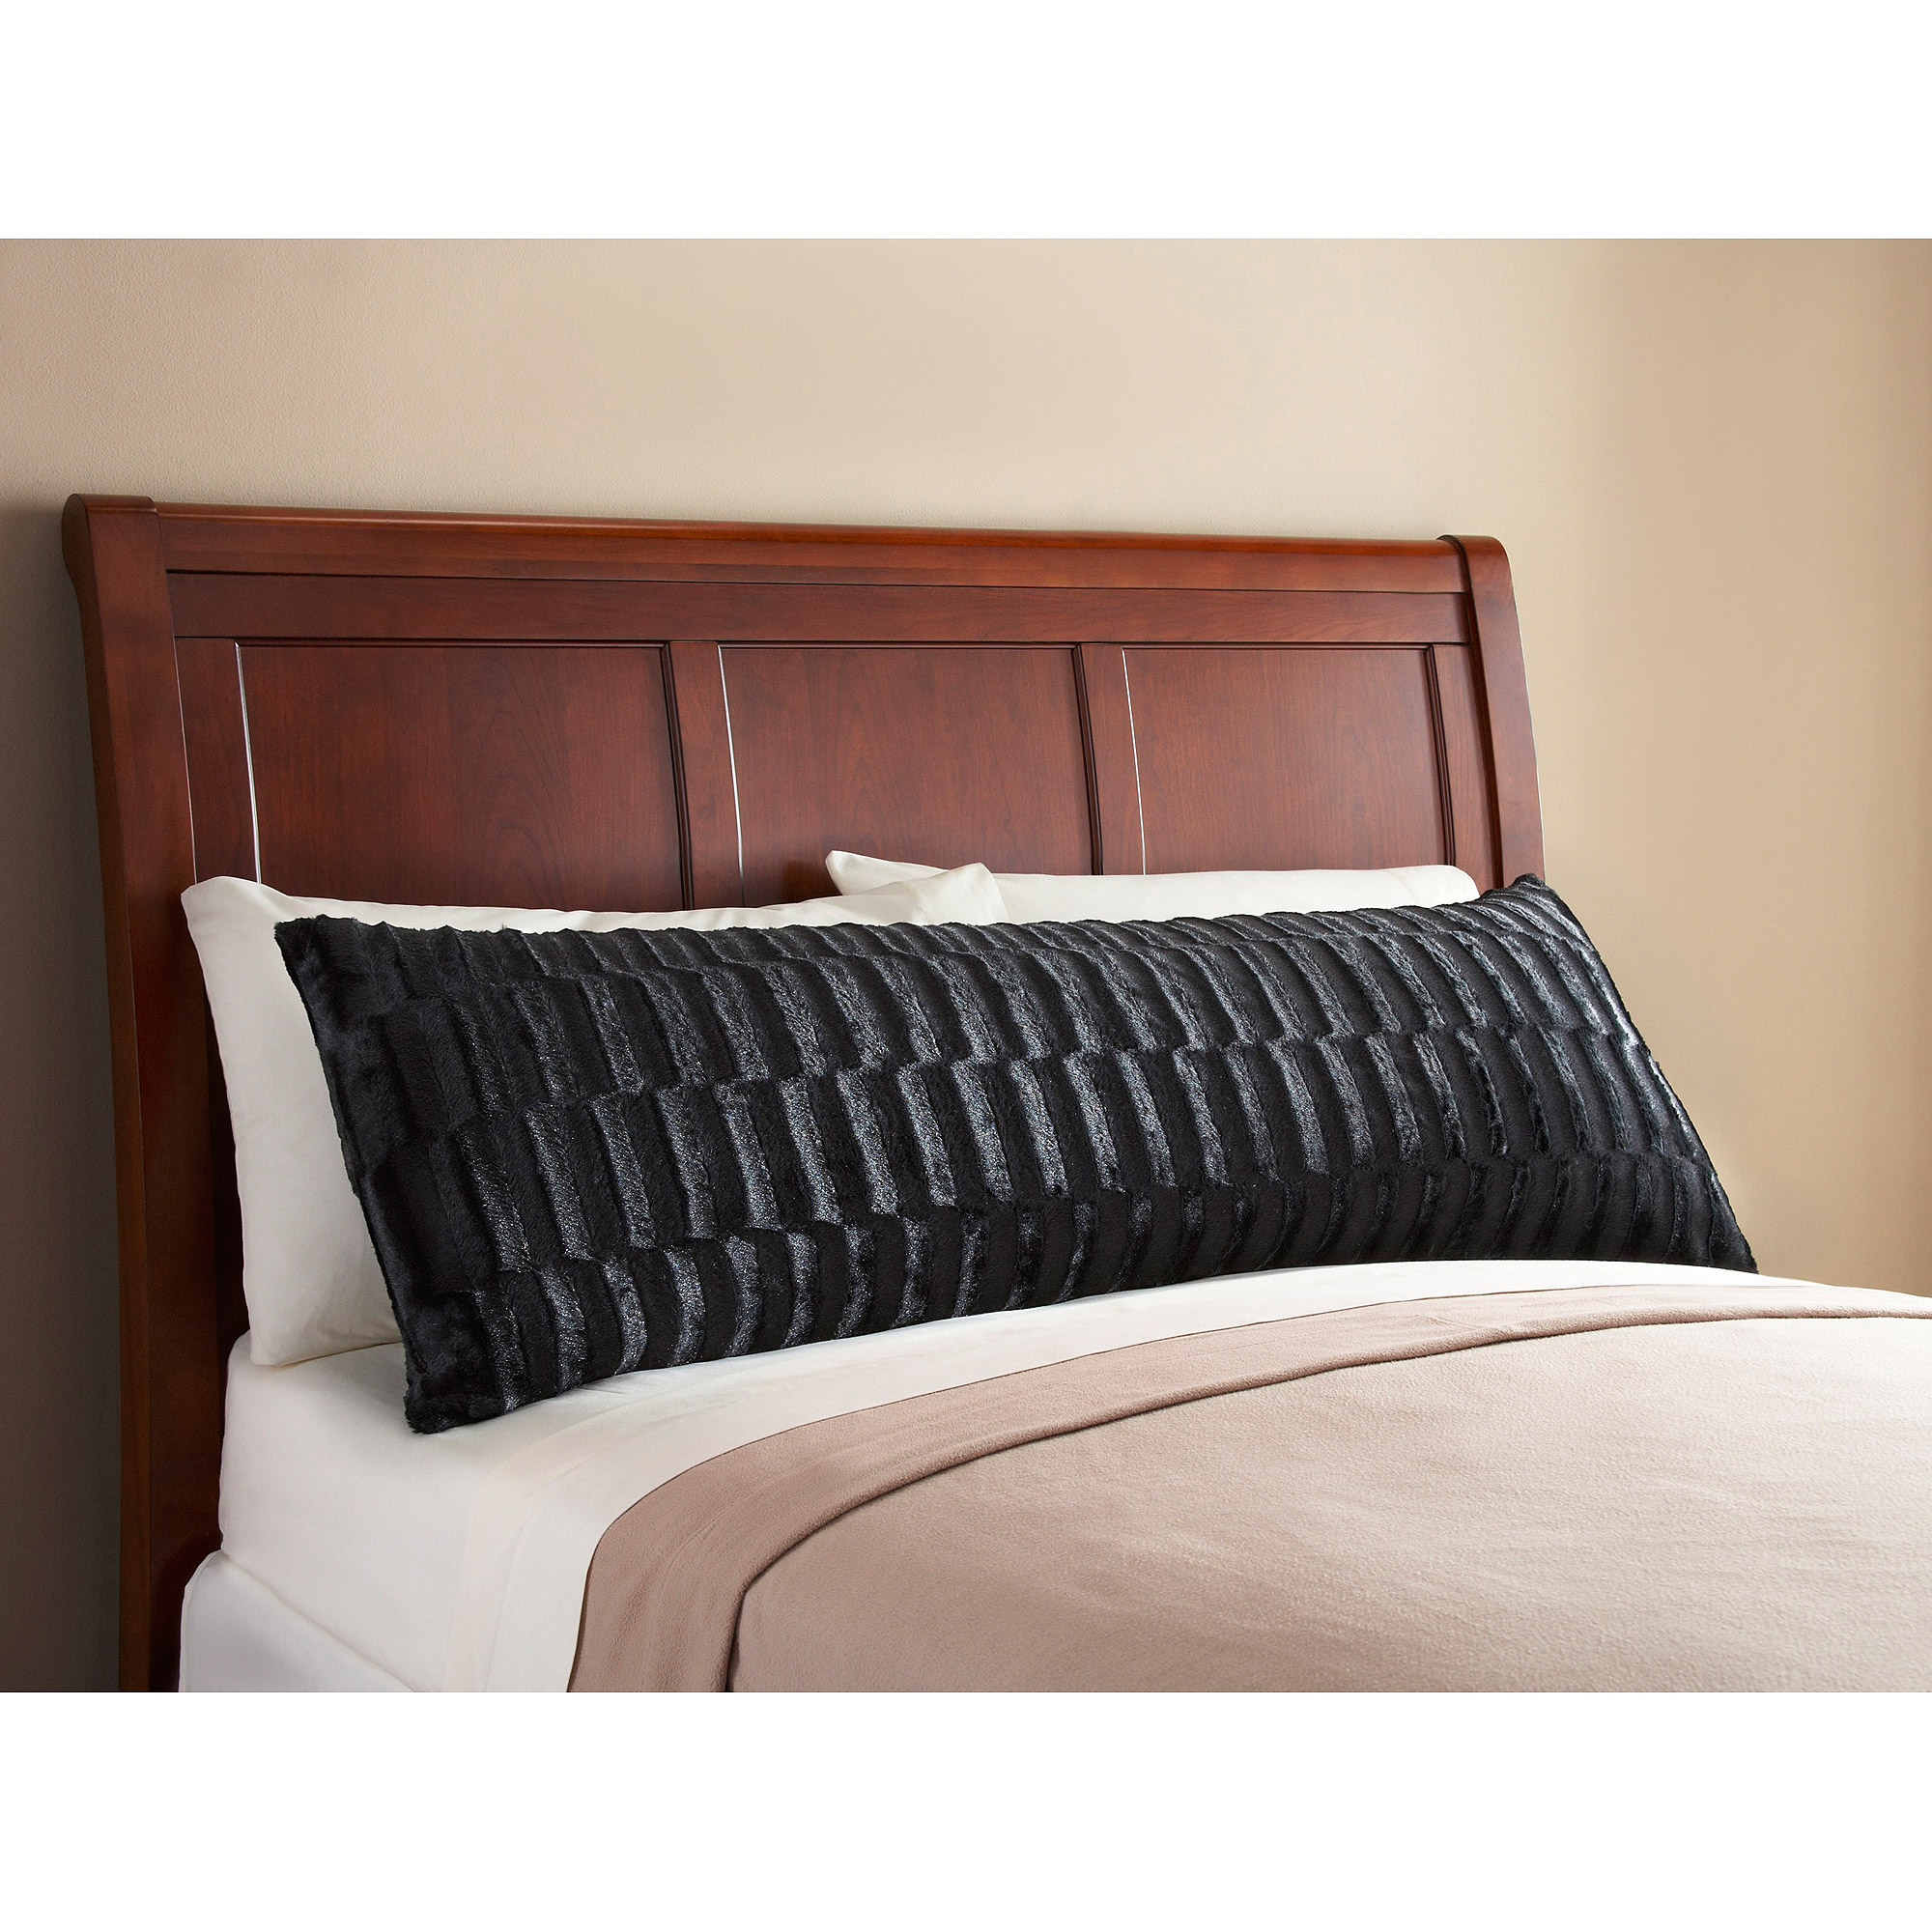 Mainstays Fur Body Pillow Cover